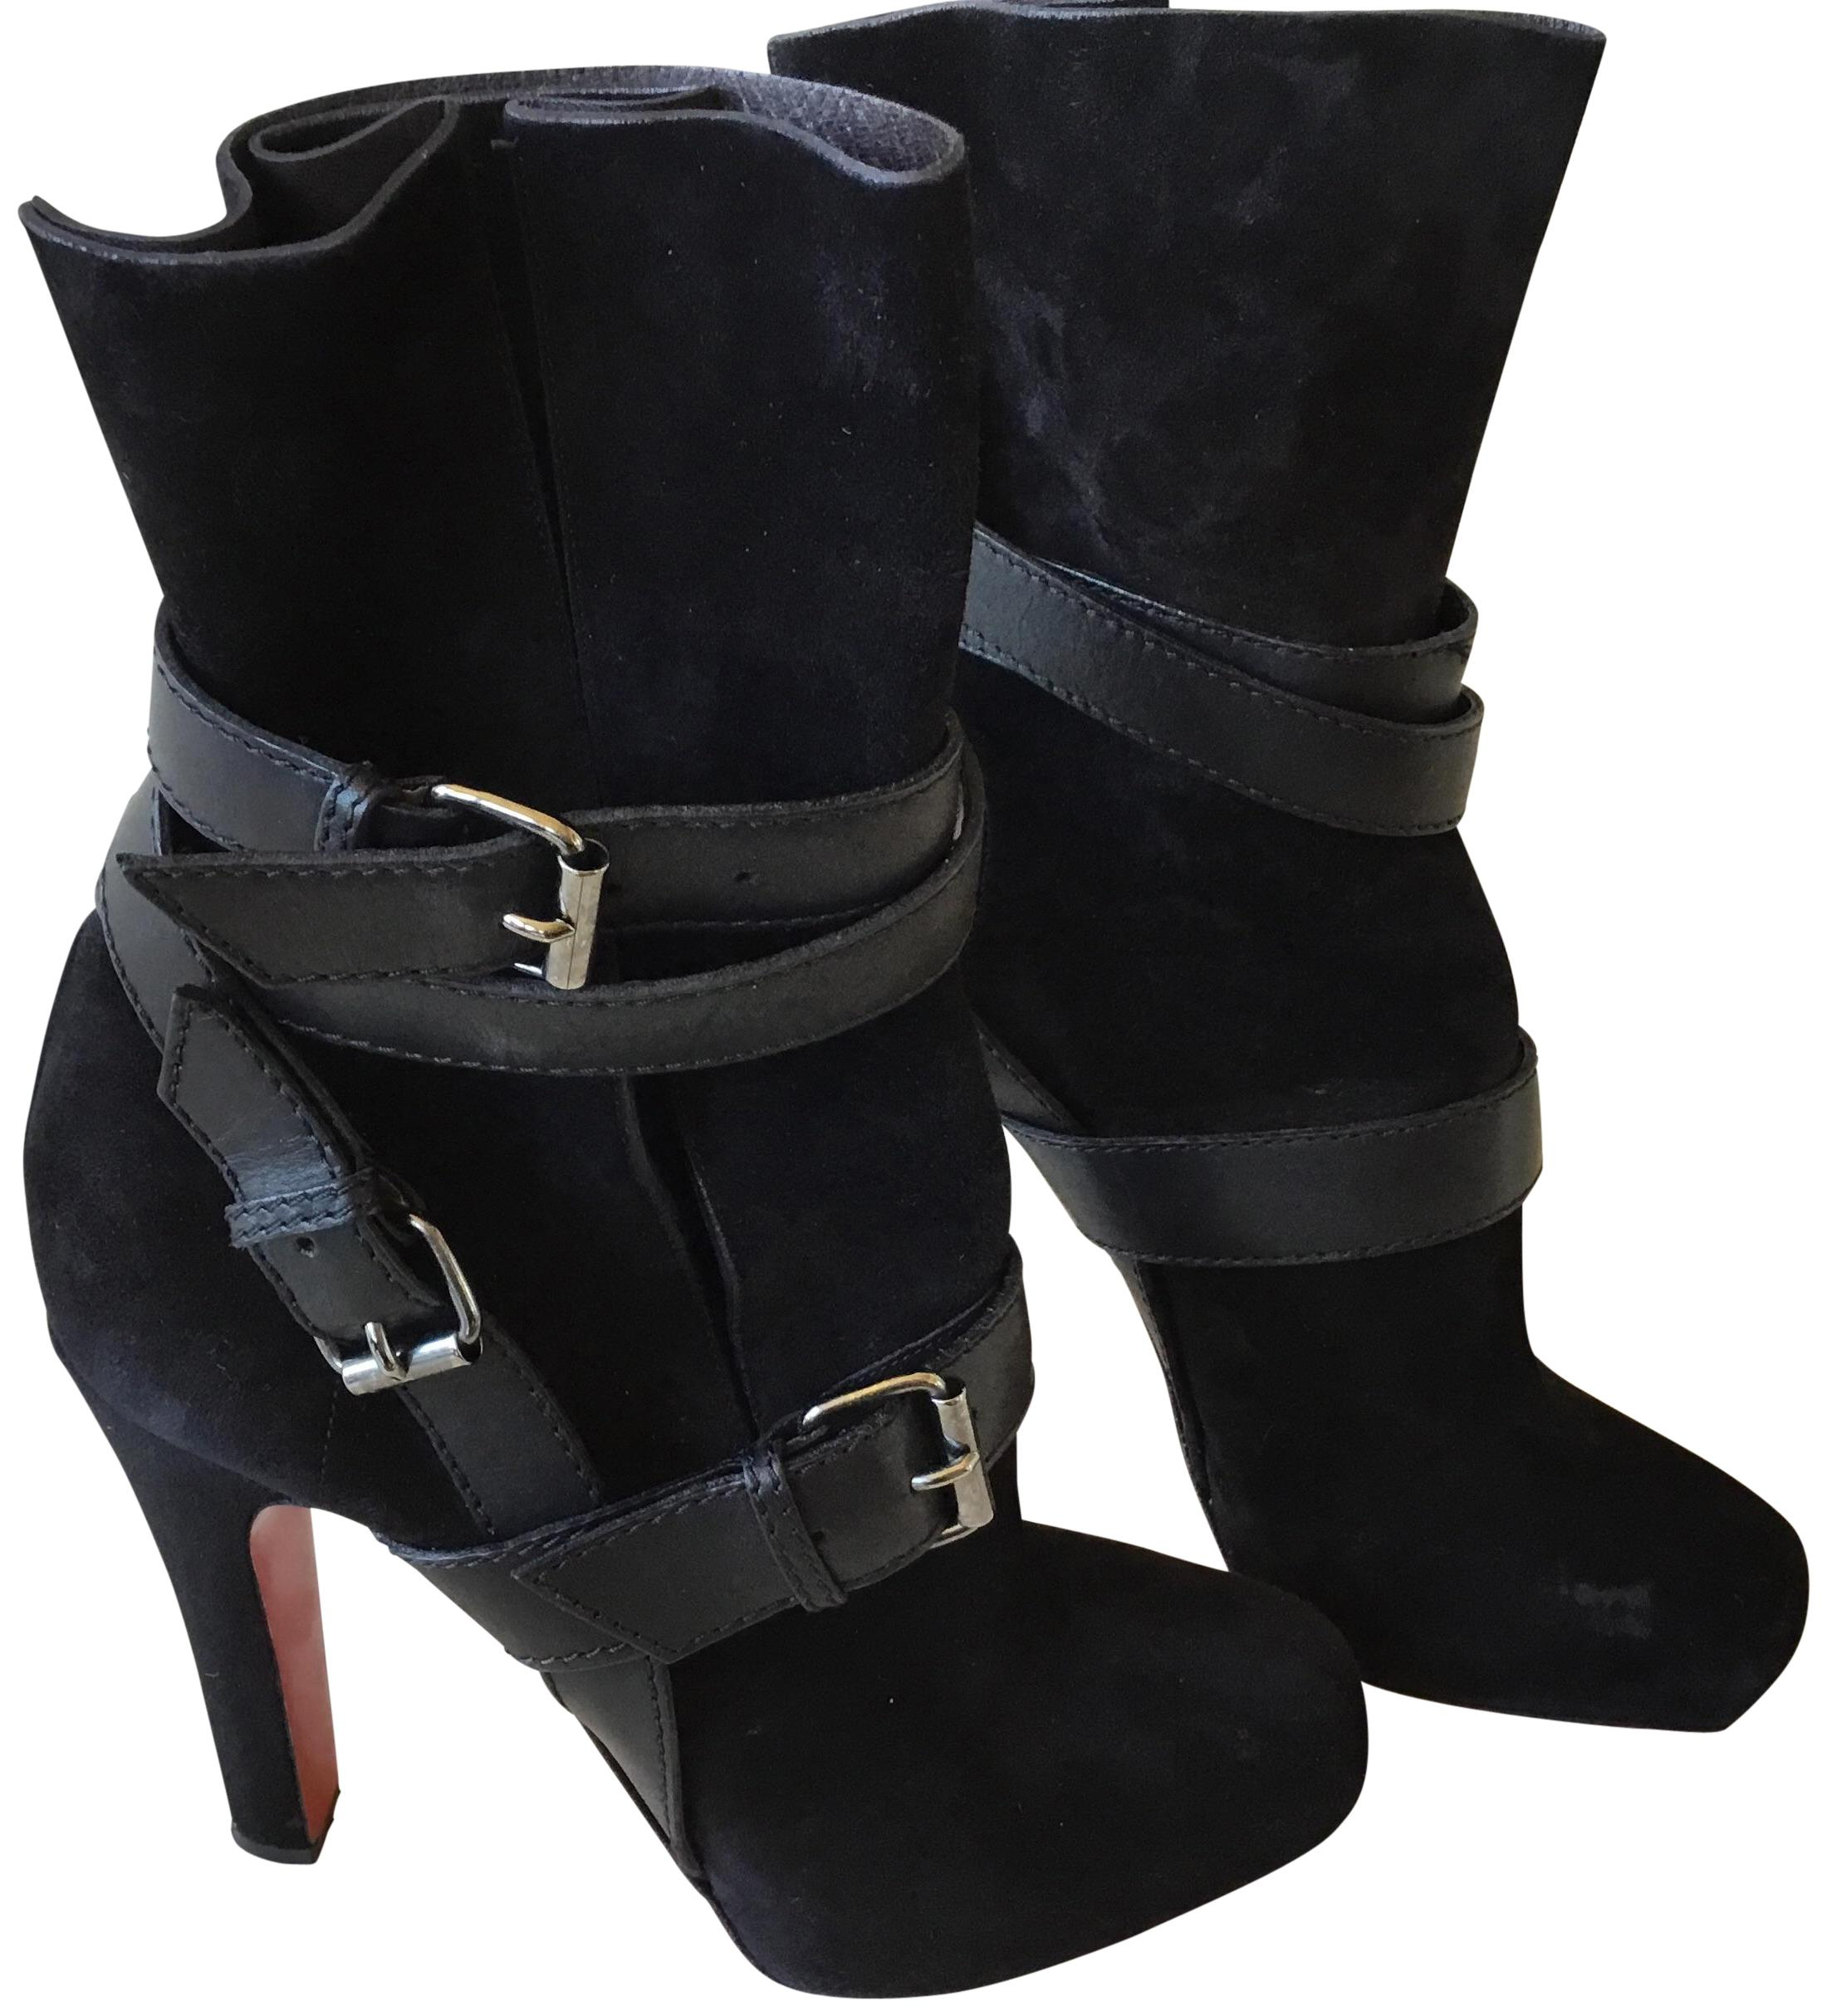 424333c2d554 Christian Louboutin Black Suede Square-toe Ankle Ankle Ankle Boots Booties  Size EU 38.5 (Approx. US 8.5) Regular (M